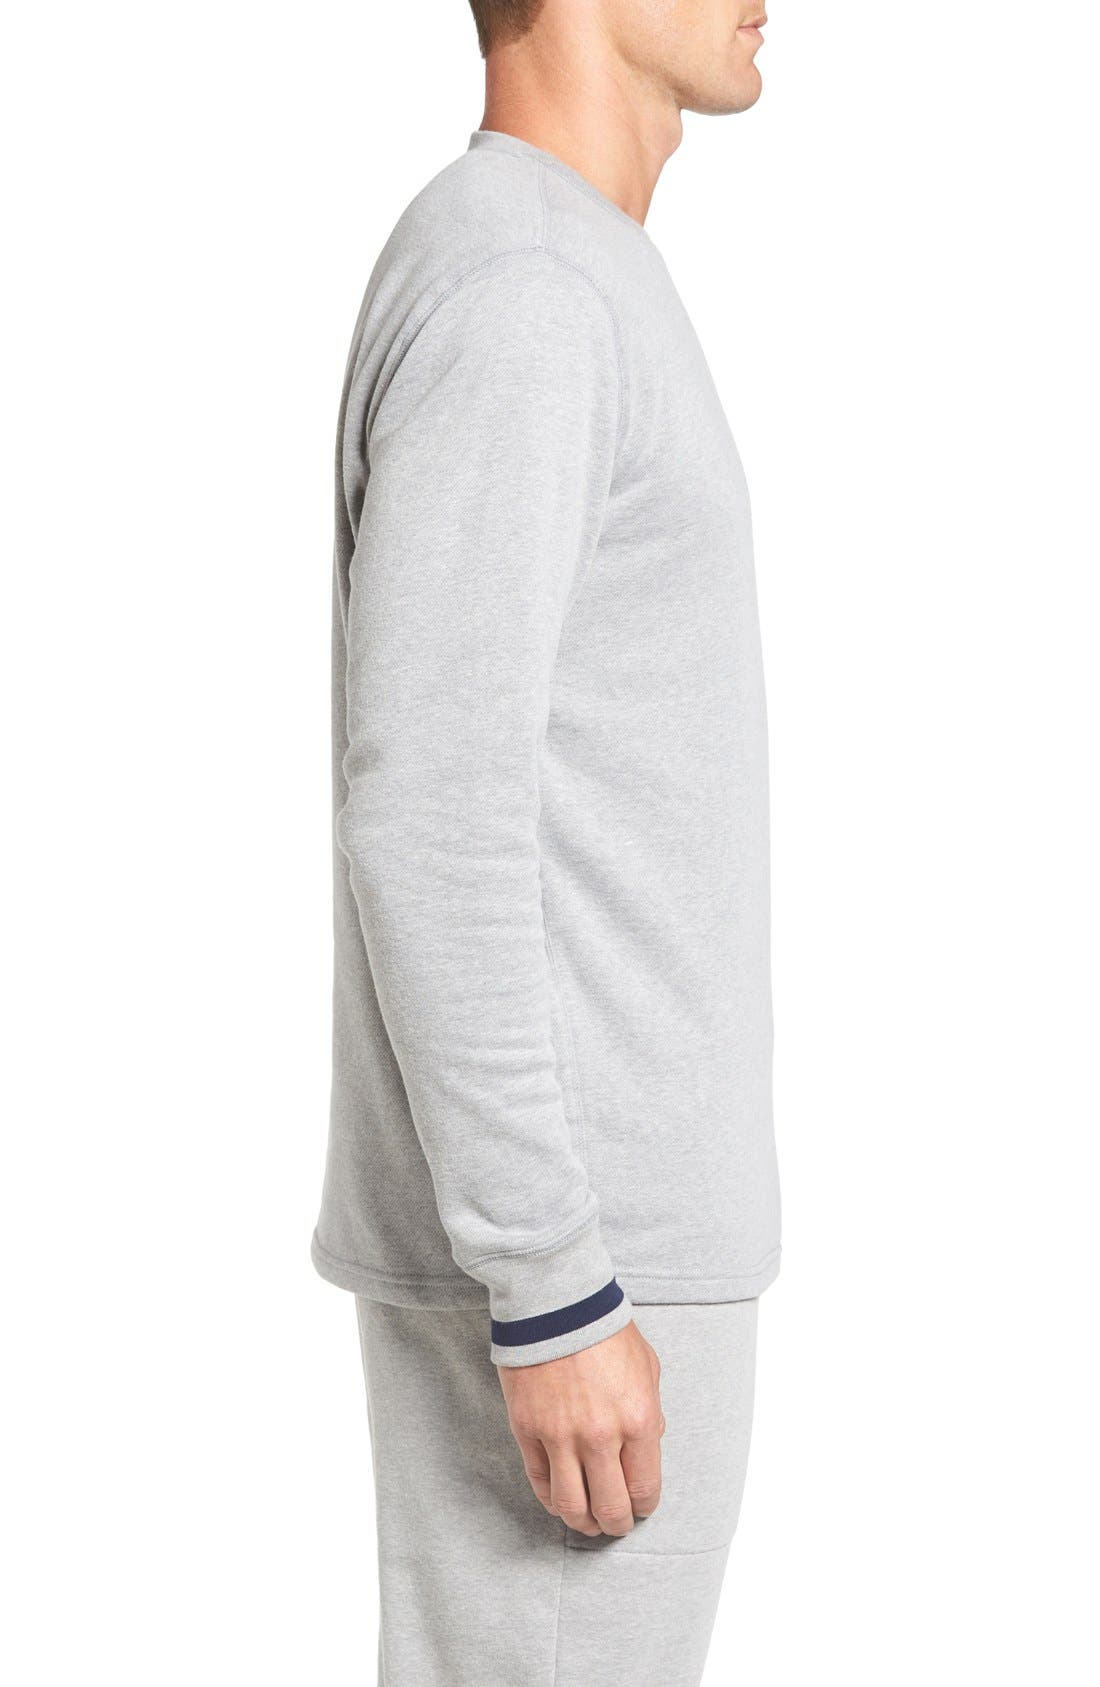 Brushed Jersey Cotton Blend Crewneck Sweatshirt,                             Alternate thumbnail 7, color,                             ANDOVER HEATHER GREY